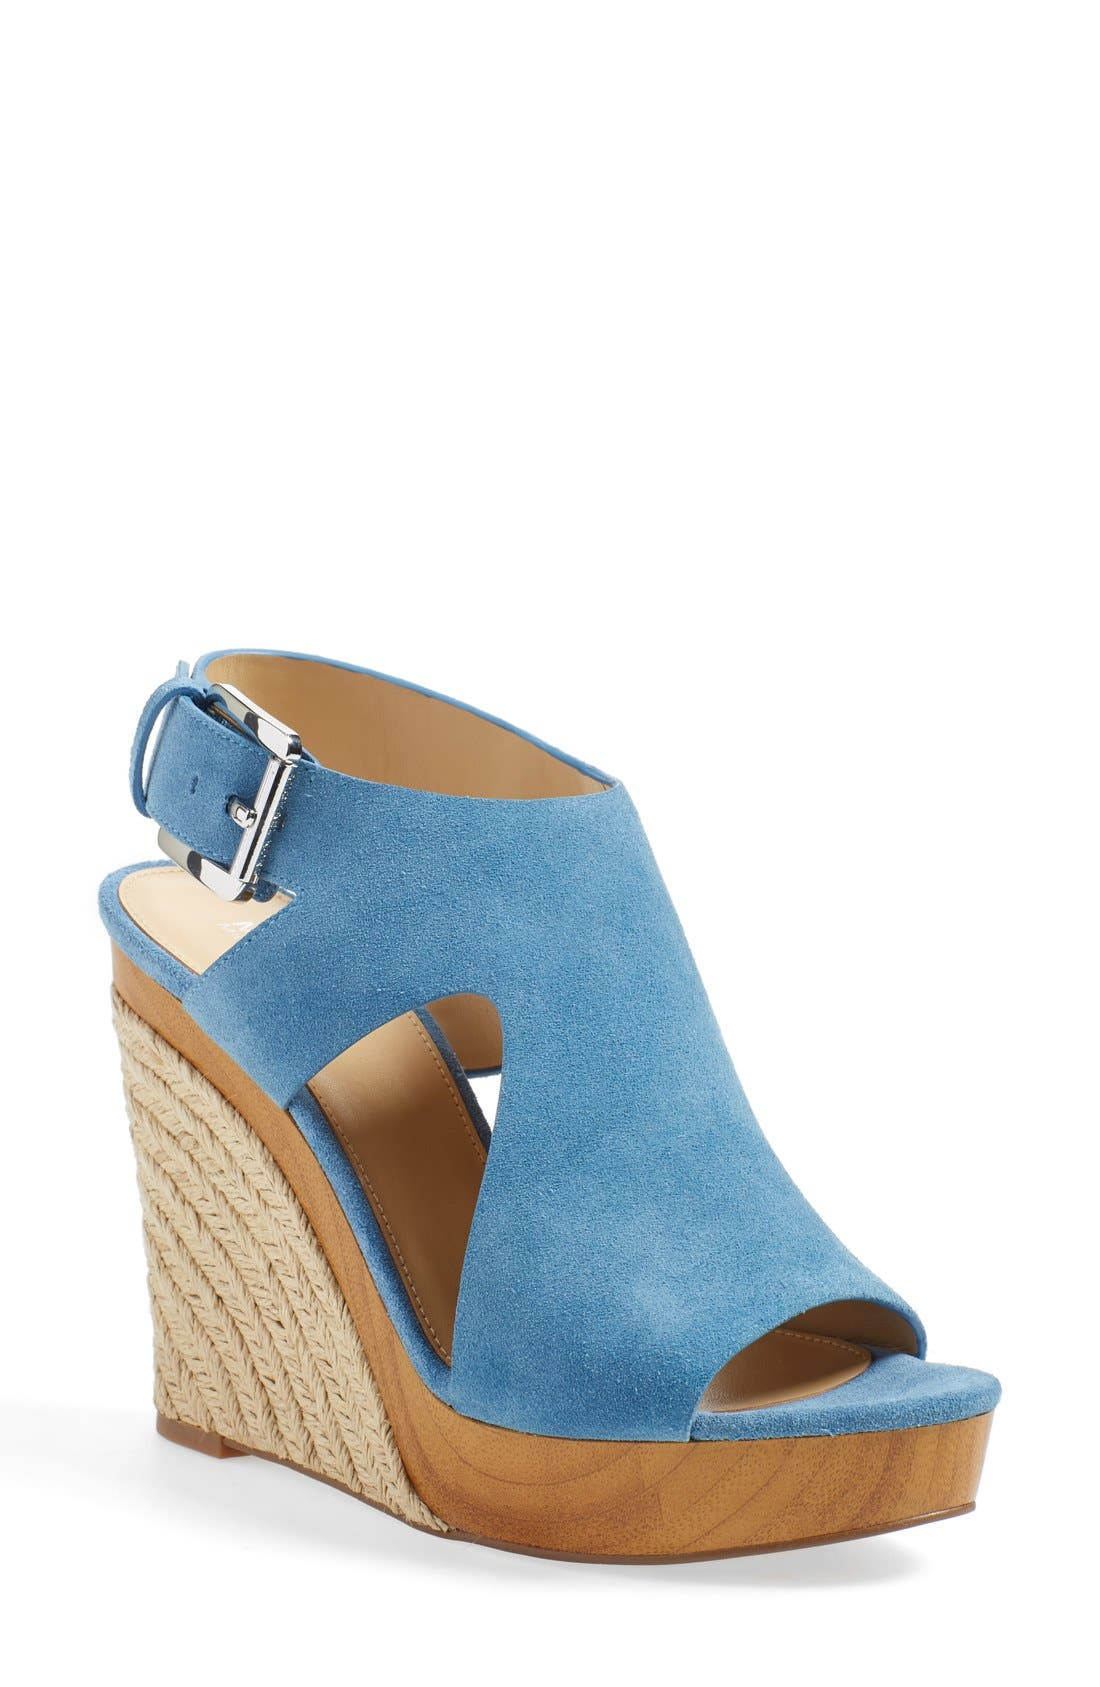 Alternate Image 1 Selected - MICHAEL Michael Kors 'Josephine' Wedge (Women)